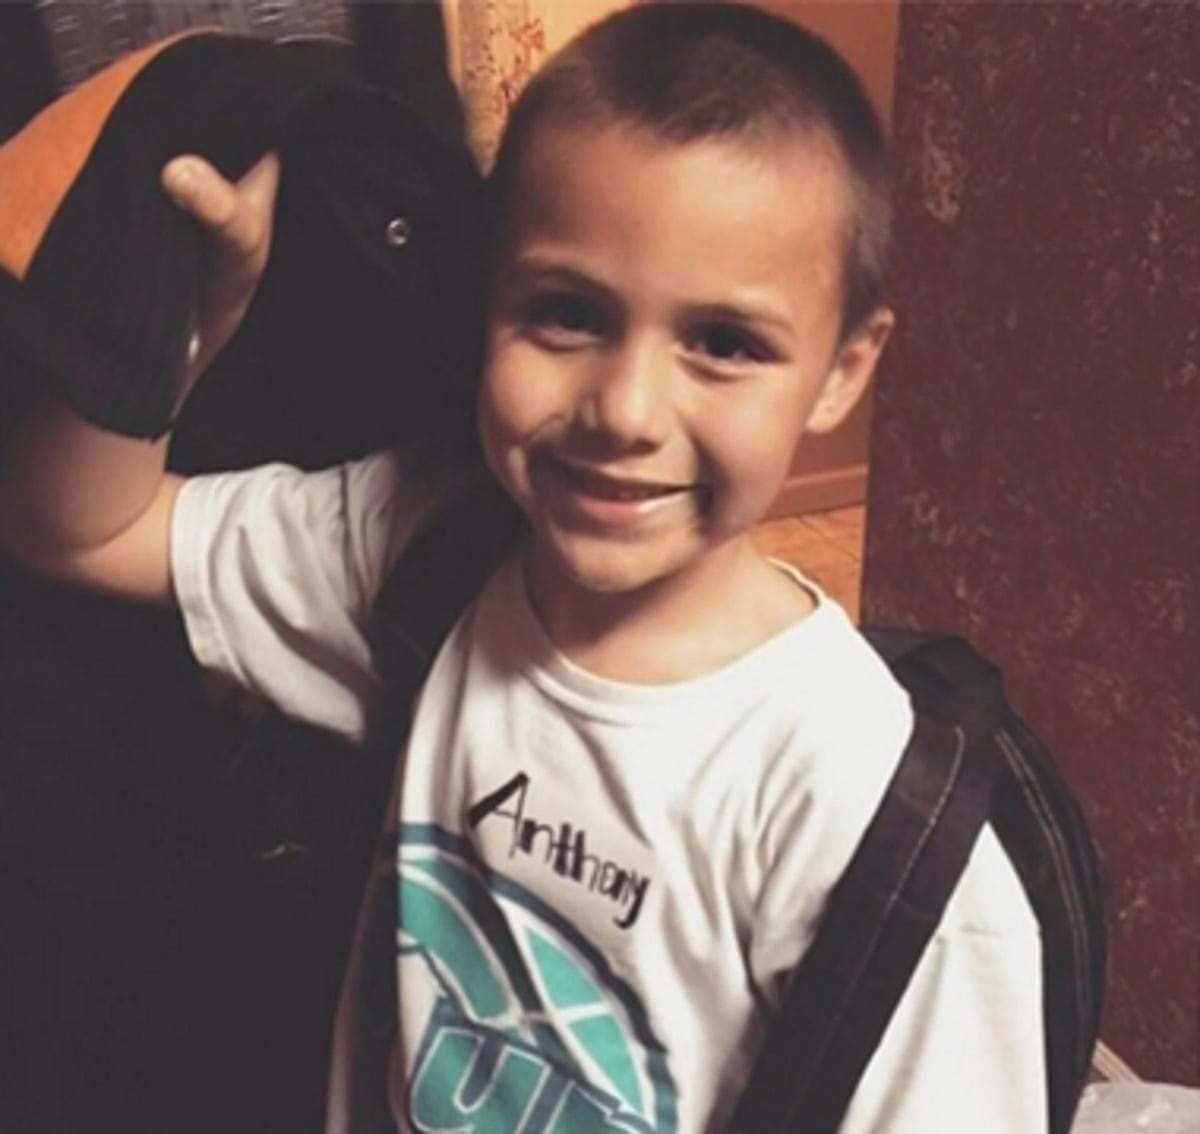 10-year-old bisexual boy Anthony Avalos, who died in California in June